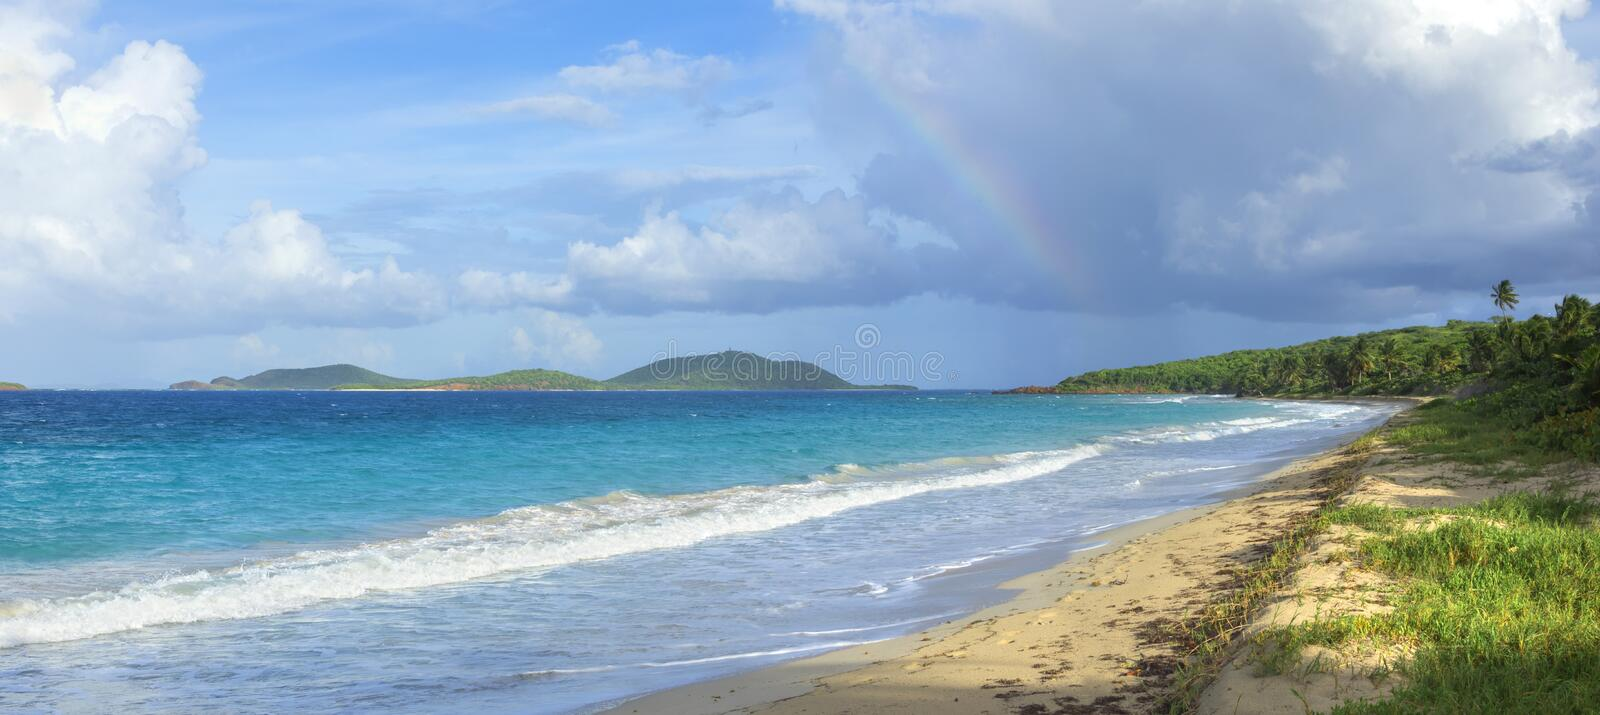 Rainbow over Caribbean island beach. Colorful rainbow in clouds over Culebrita island in panoramic Zoni Beach scene with turquoise blue Caribbean water of Isla royalty free stock photos